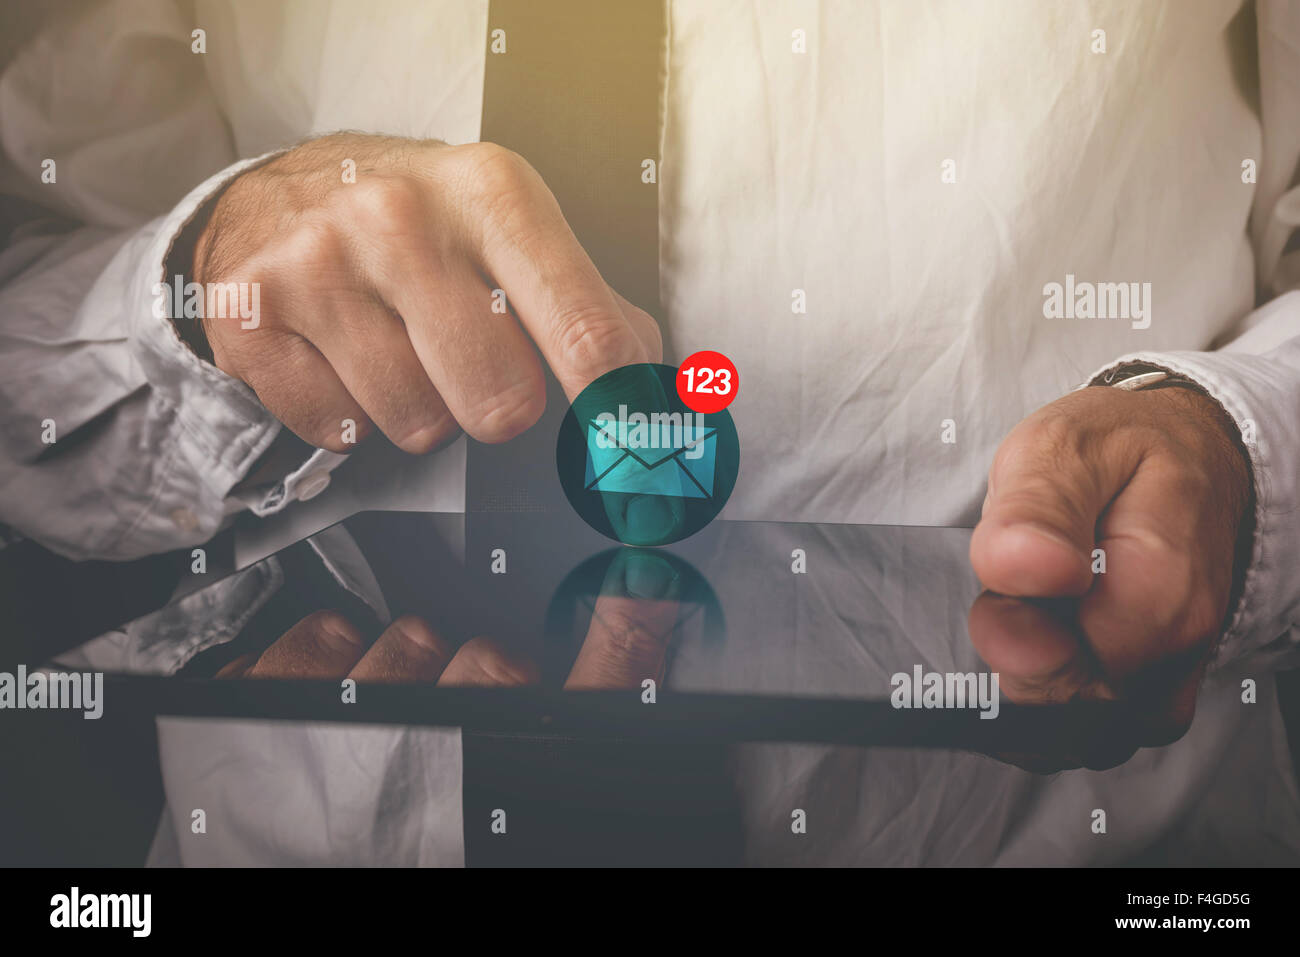 Businessman viewing e-mail messages on digital tablet computer, finger on touch screen of wireless device - Stock Image